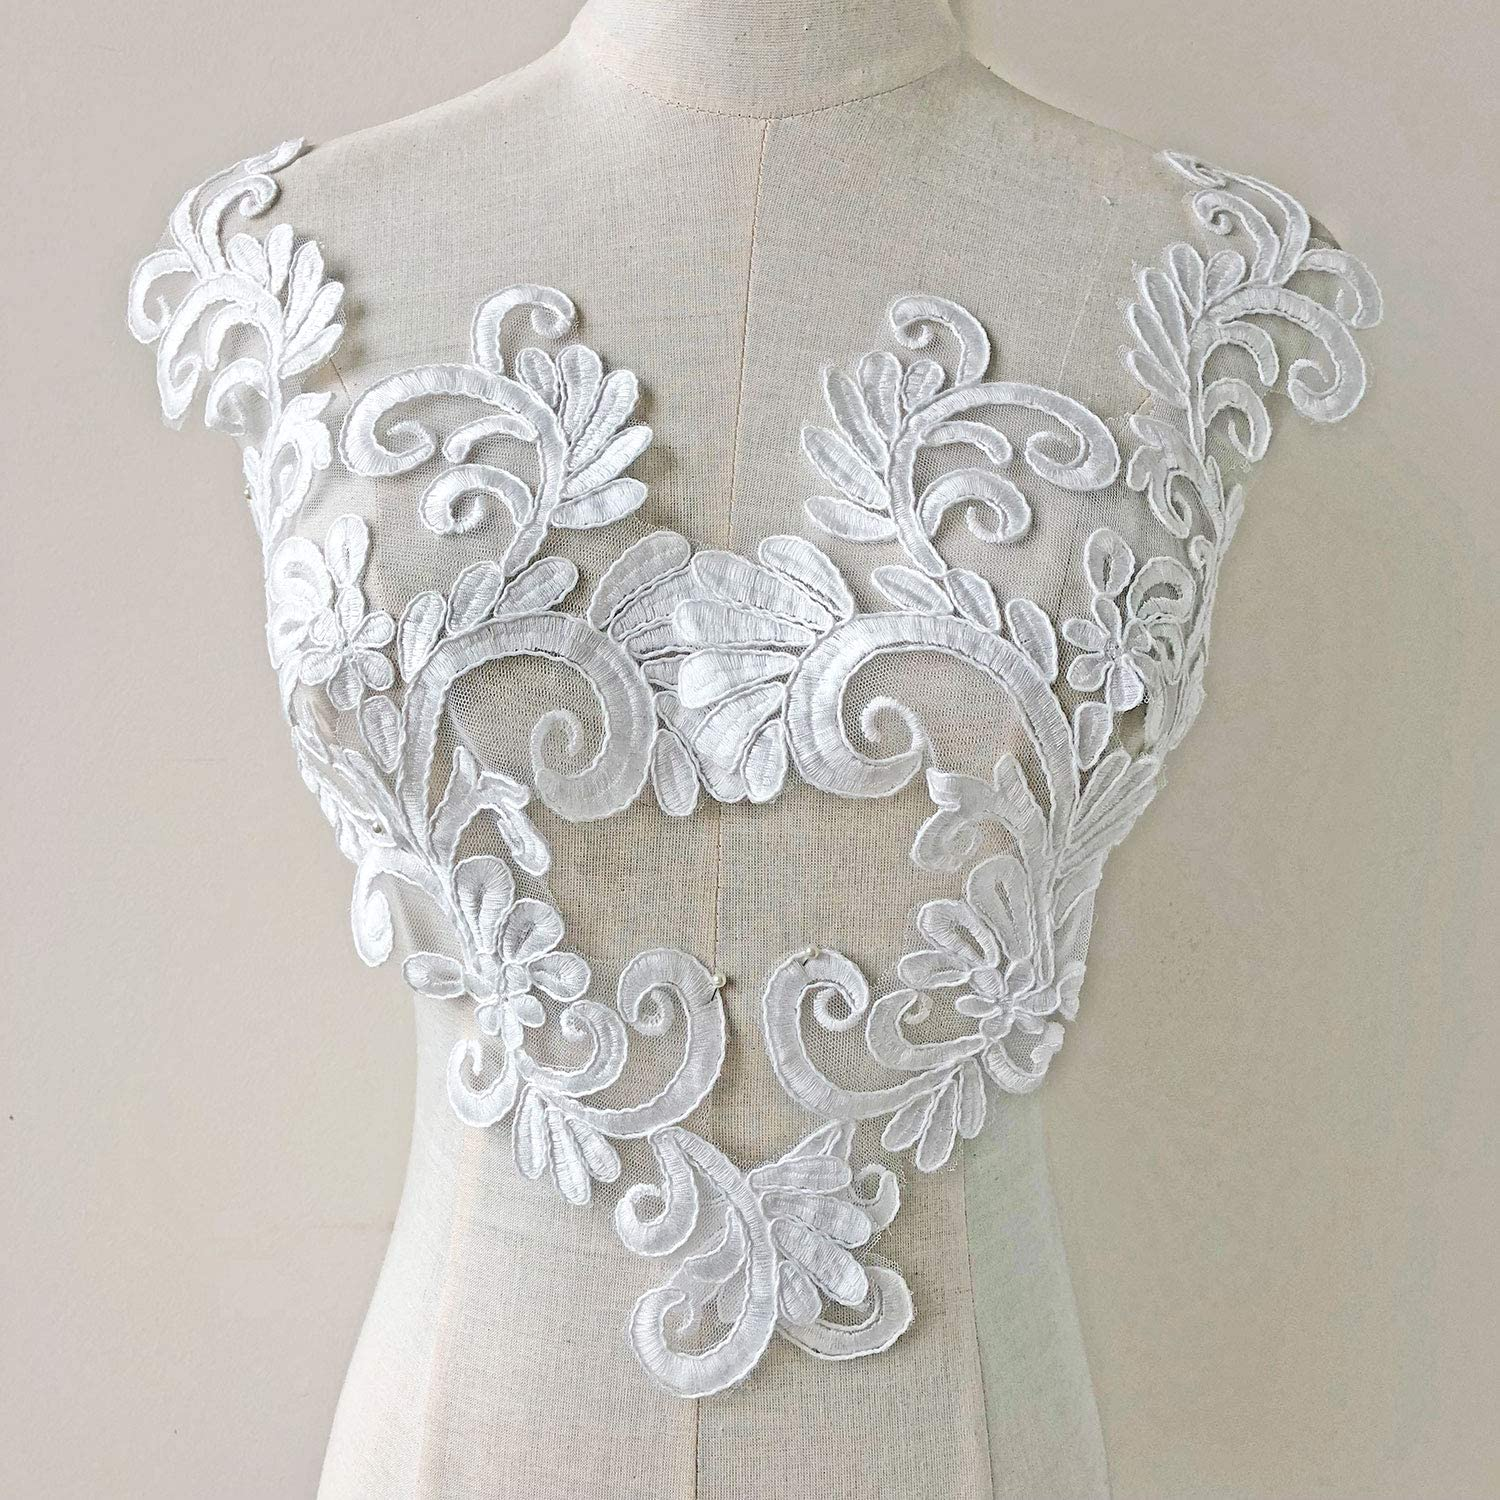 2Pcs Floral Embroidered Lace Fabric Applique Guipure Wedding Dress Sewing Patch